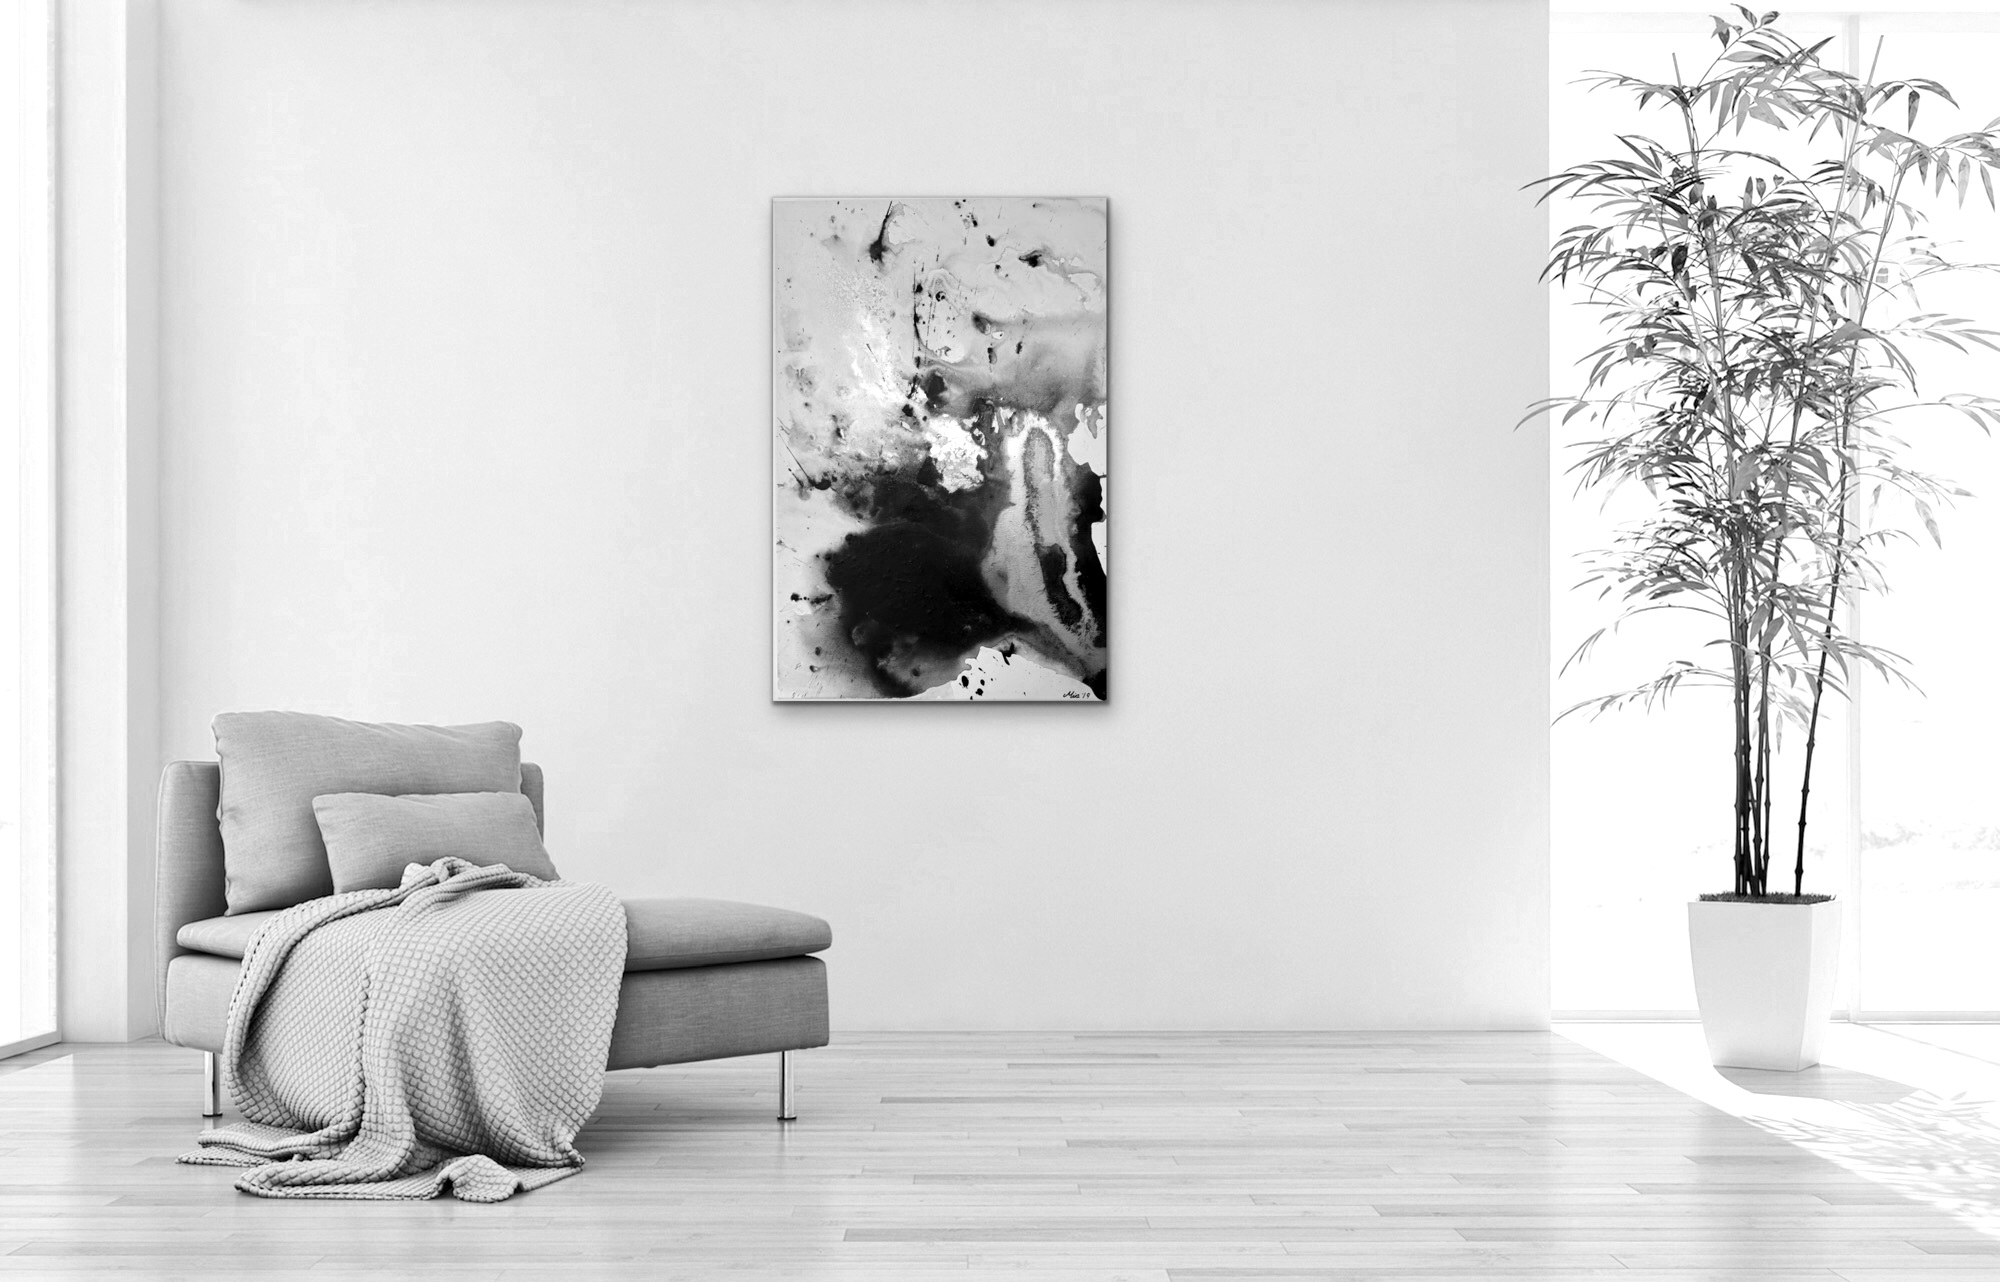 Cordelia-artwork-abstract-art-contemporary-art-gallery-interior-christchurch-newzealand- light-wall.jpg